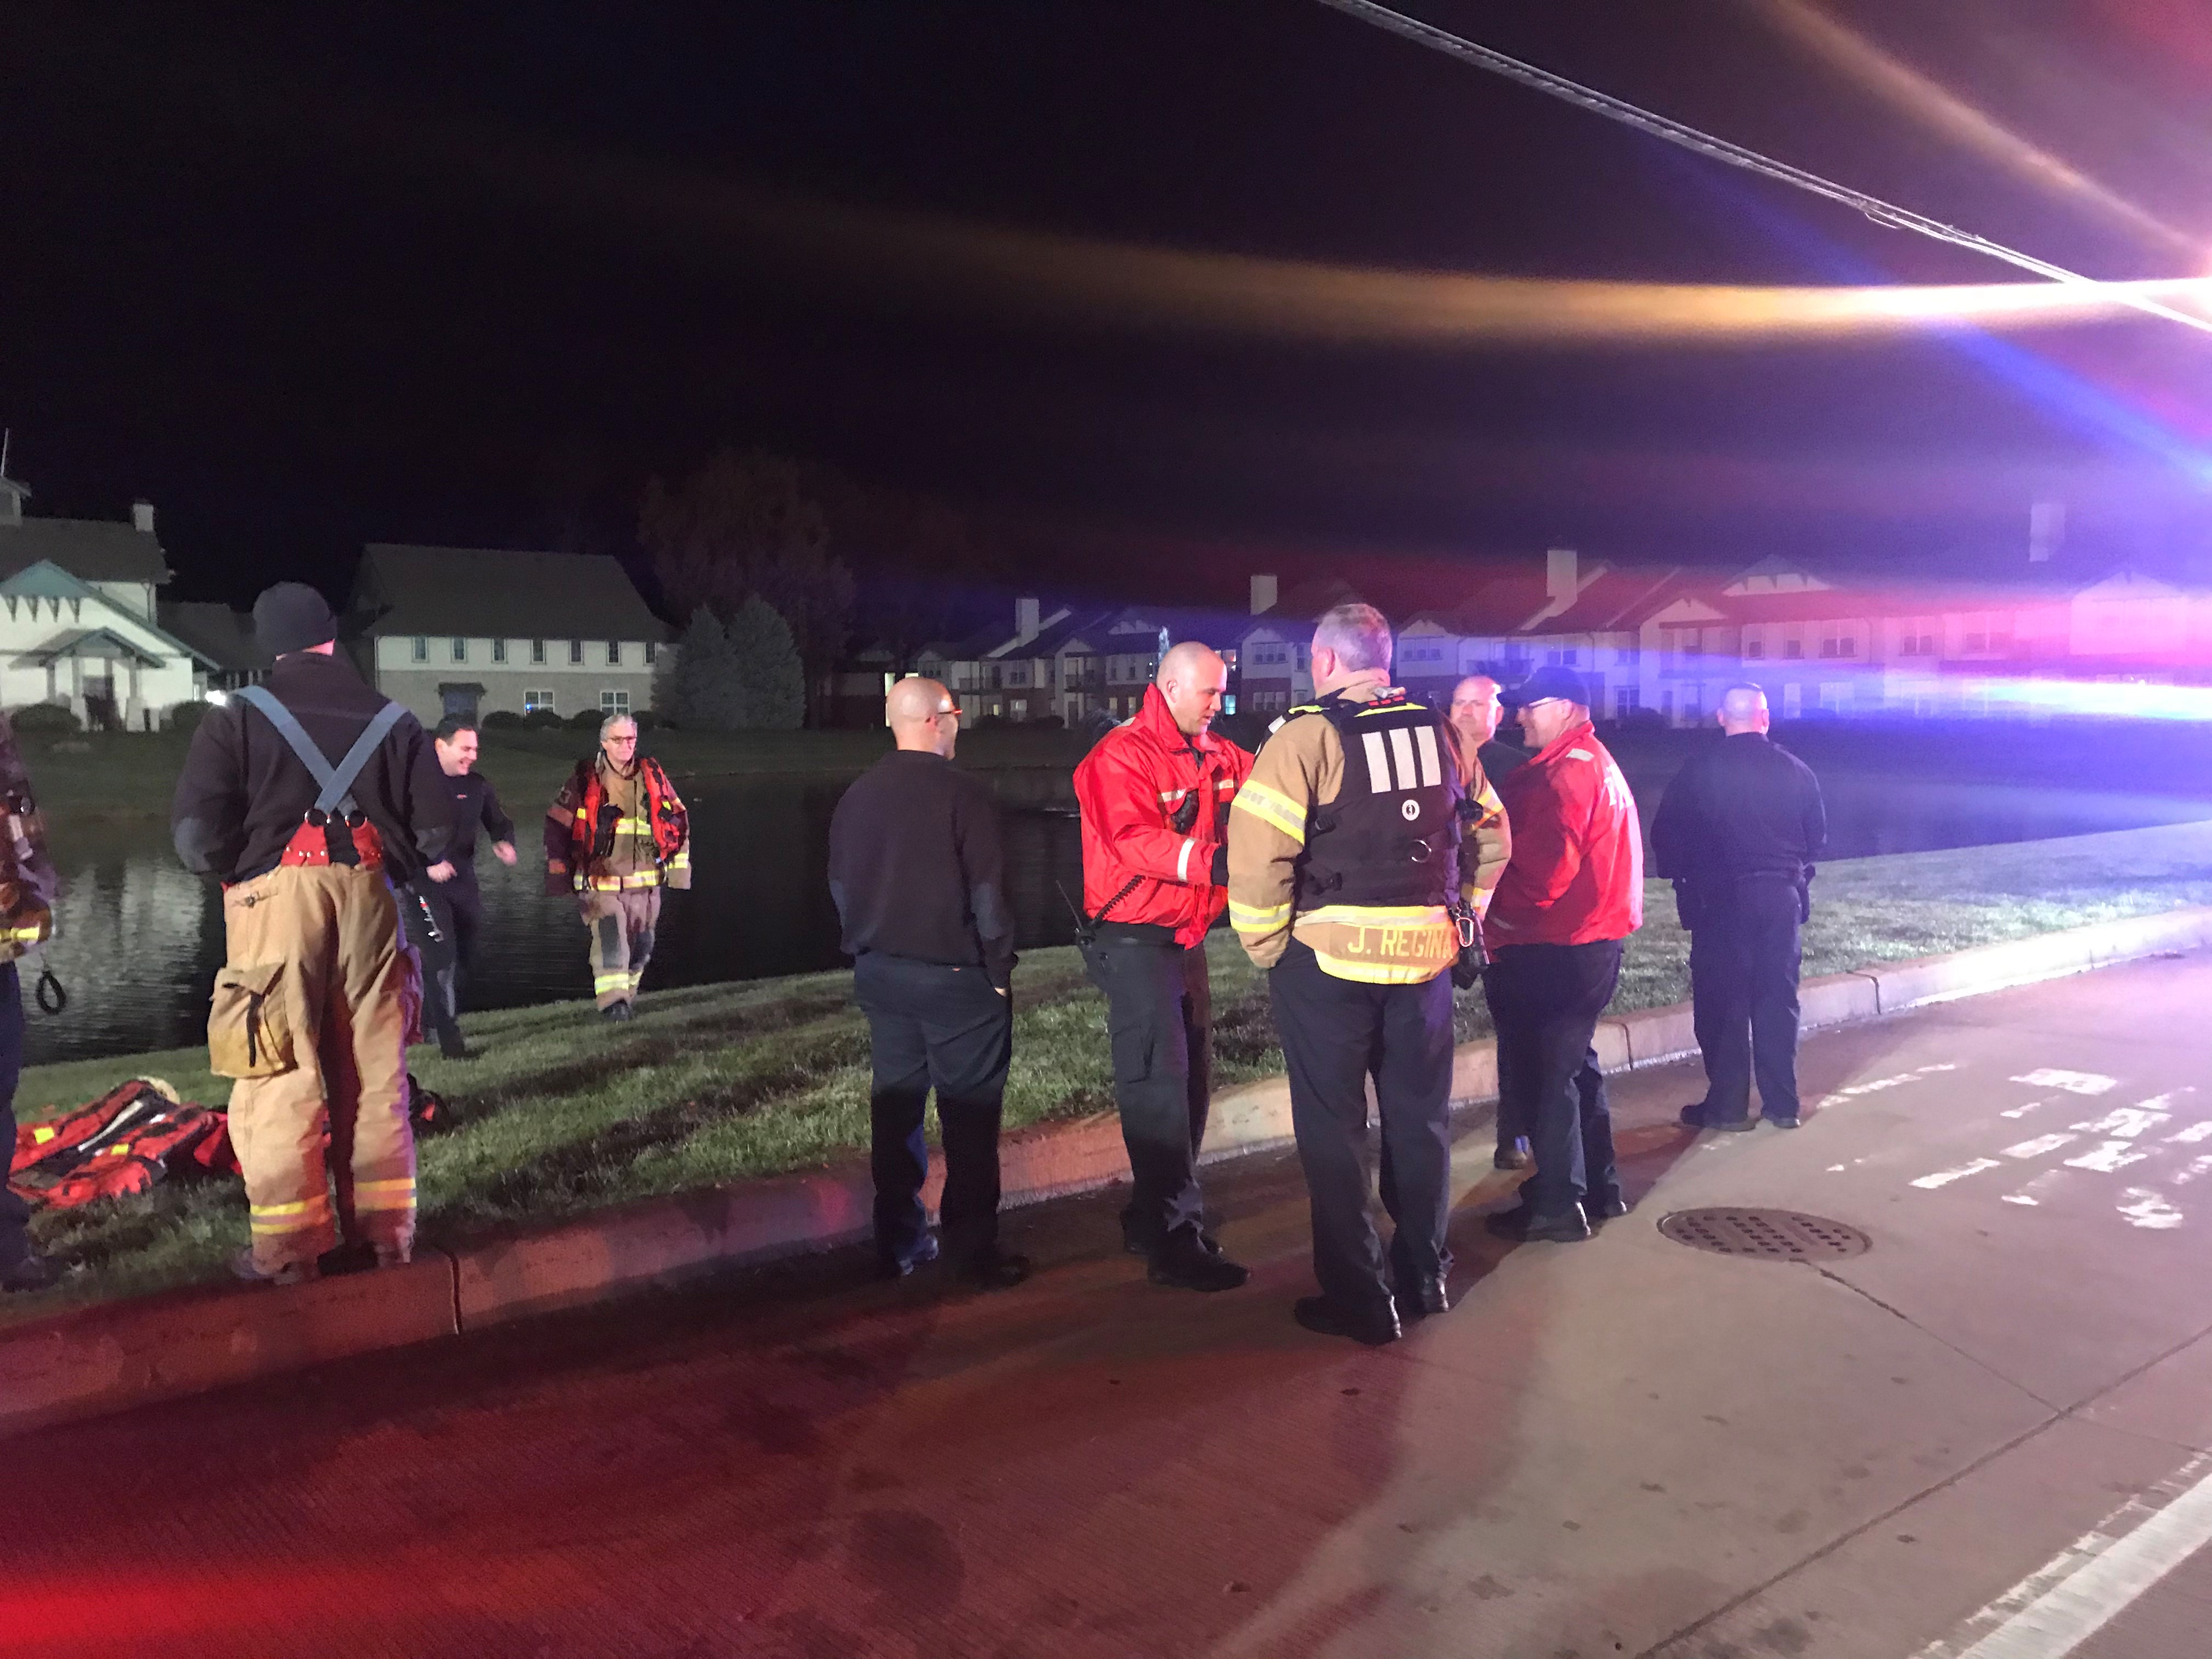 Mishawaka firefighter and police officer pull man from car in Mishawaka pond. // WSBT 22 Photo